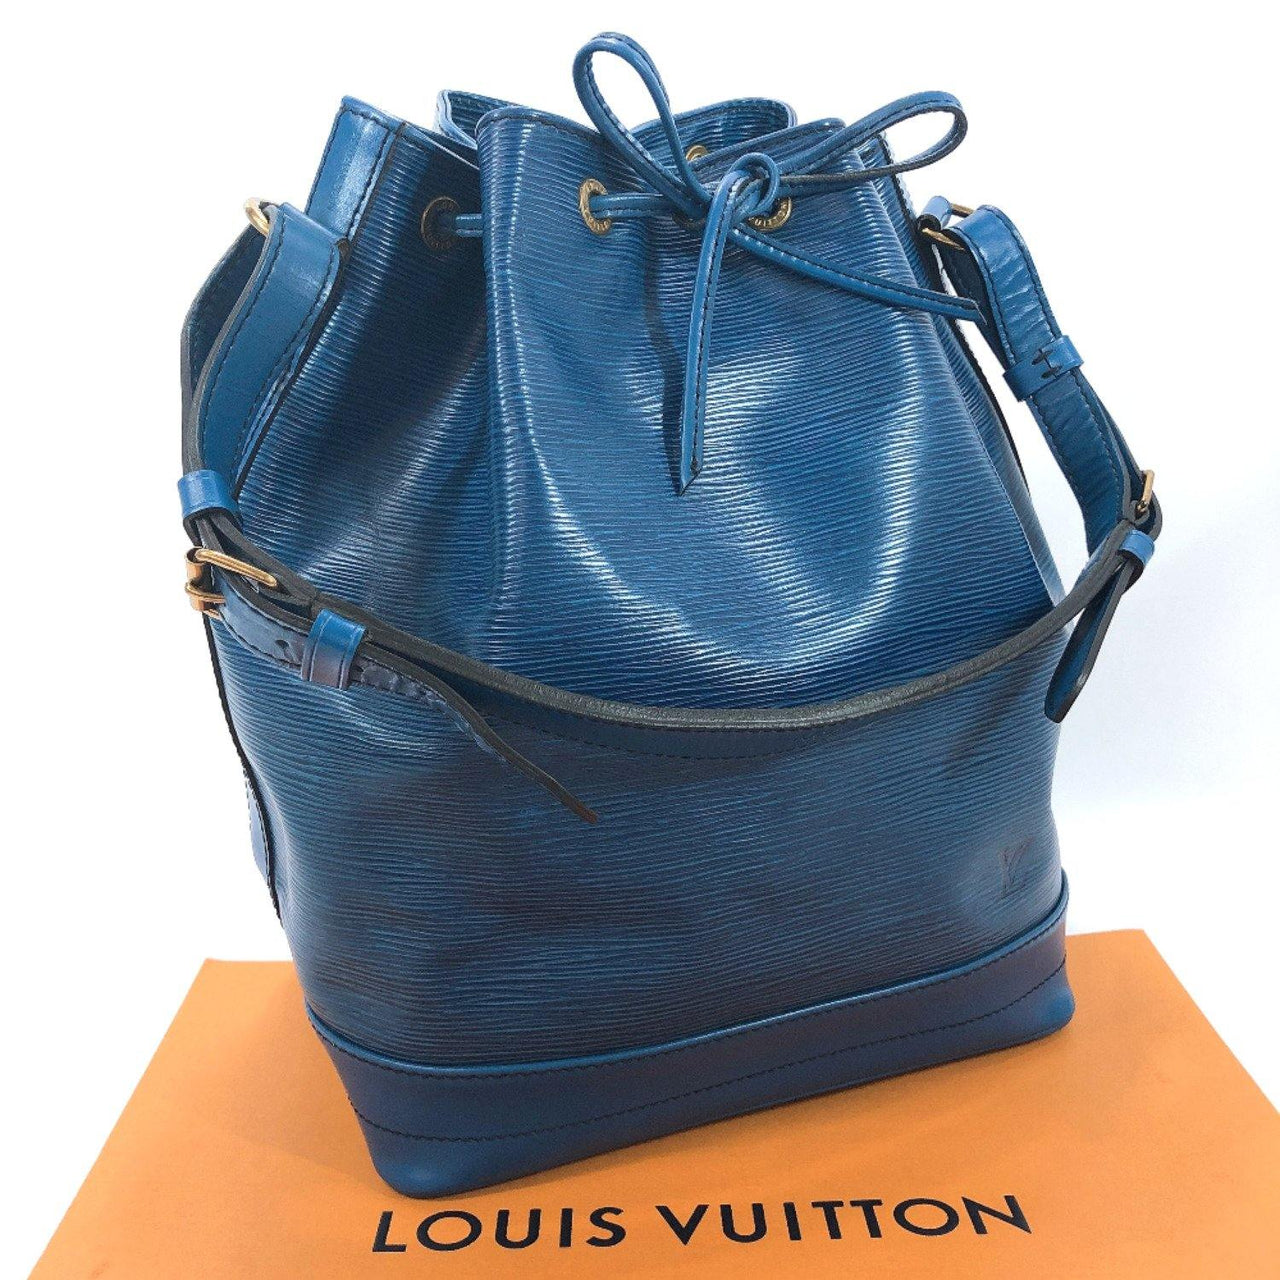 LOUIS VUITTON Shoulder Bag M44005 Noe vintage Epi Leather blue Women Used - JP-BRANDS.com